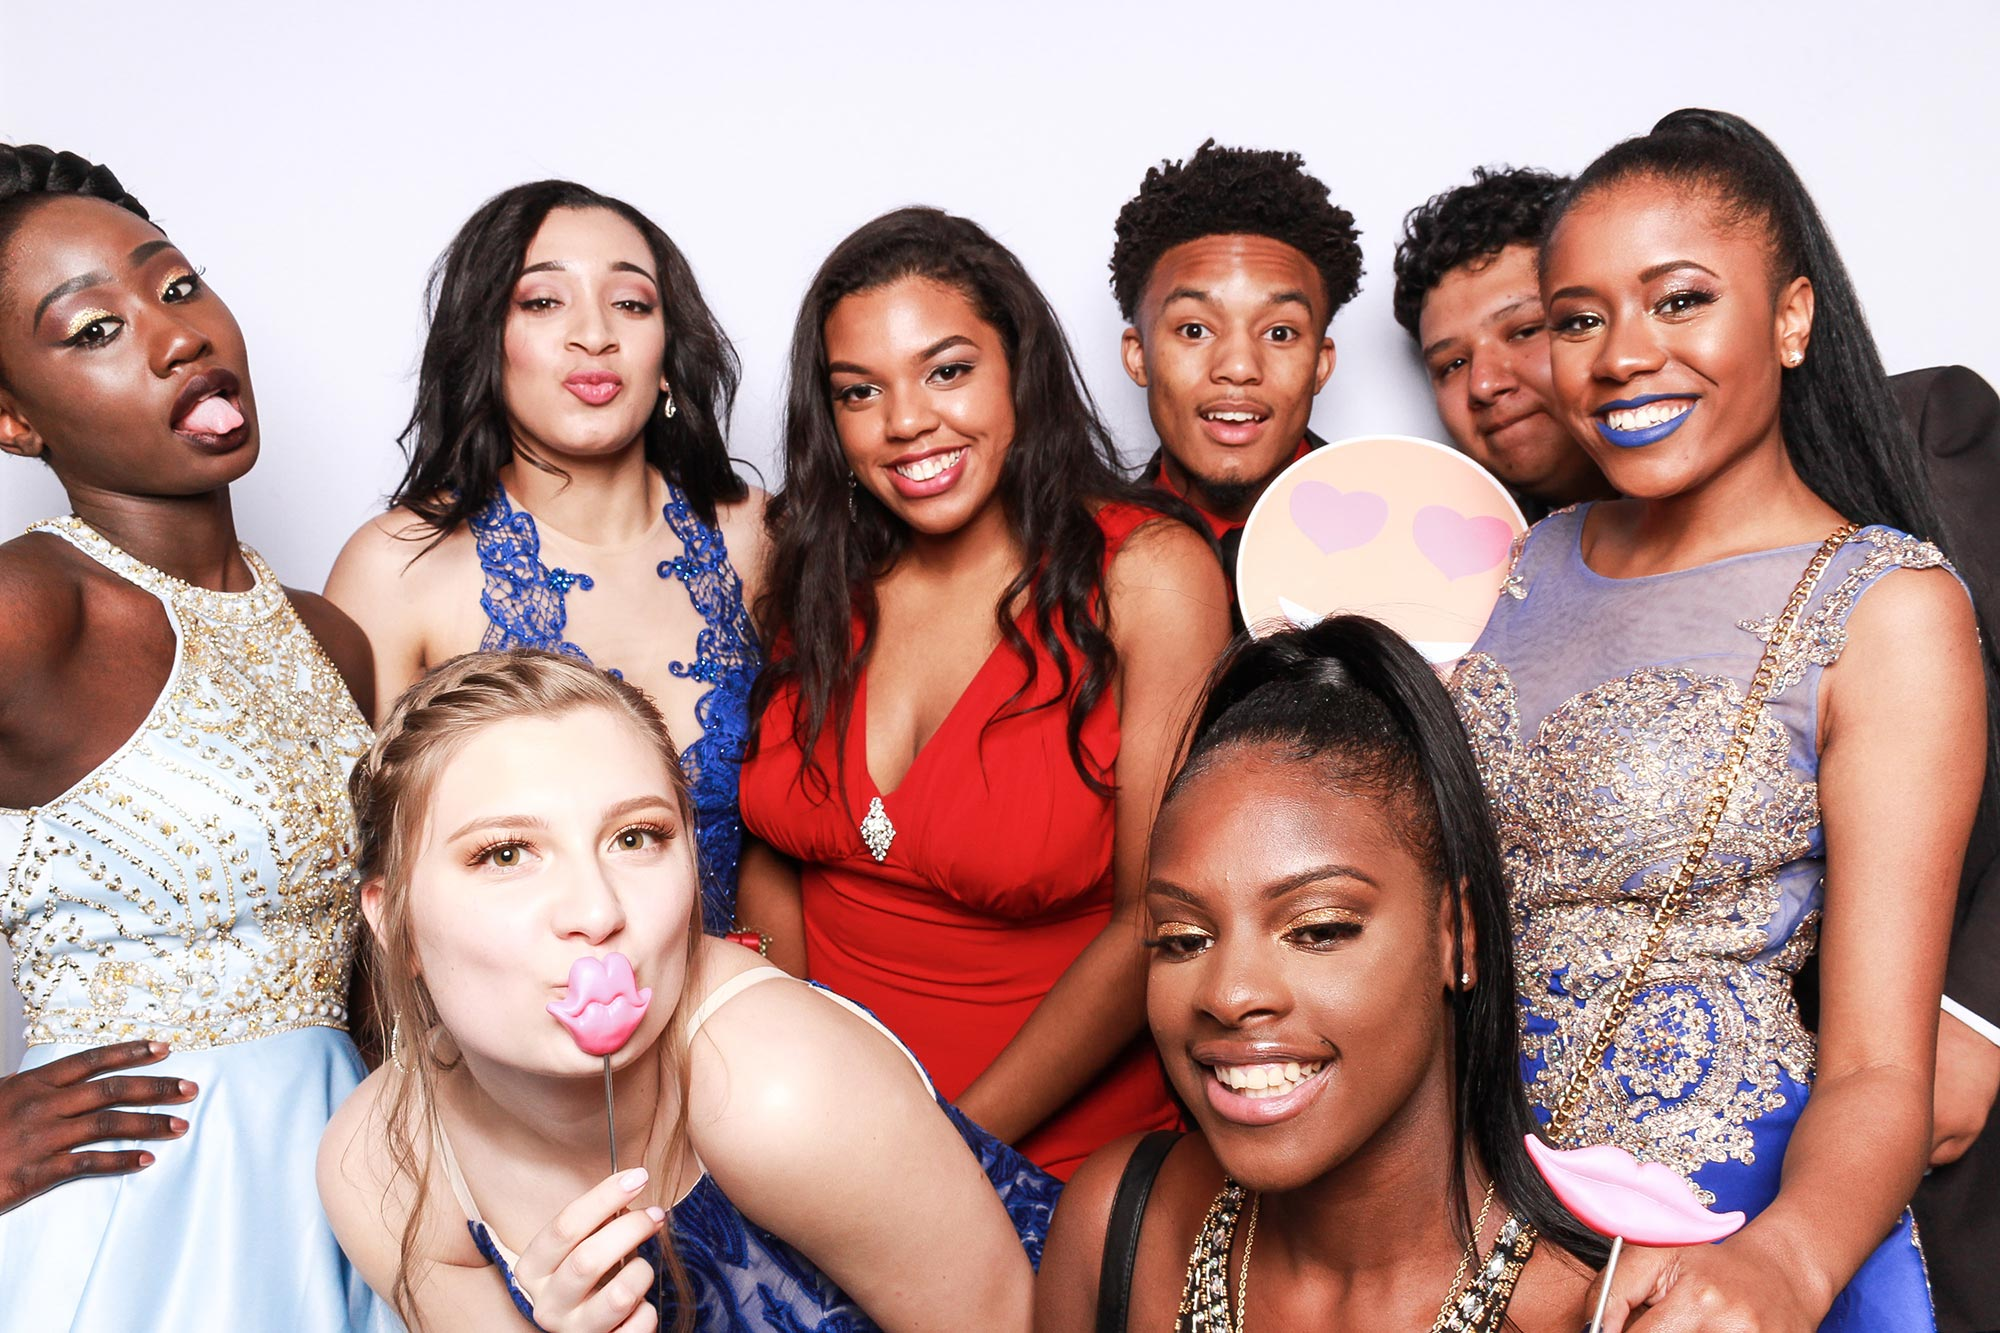 Group Photo High School Dance Photo Booth Experience